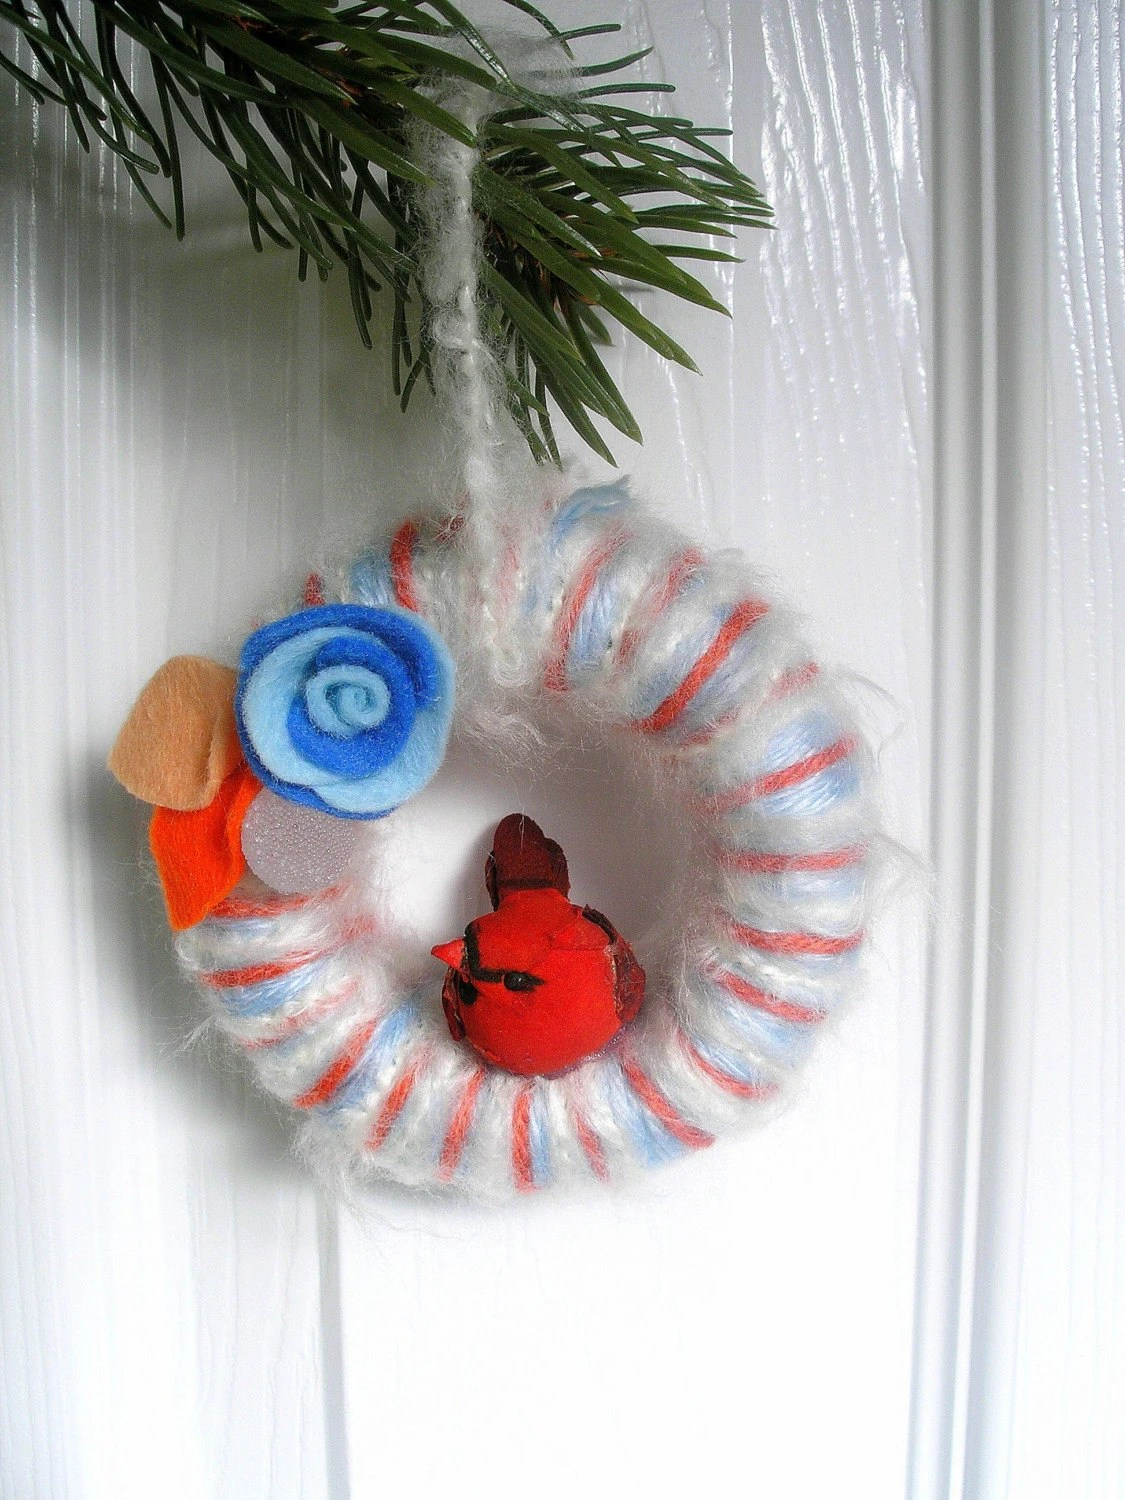 Powder Blue and Peach Yarn Wreath Ornament with Cardinal